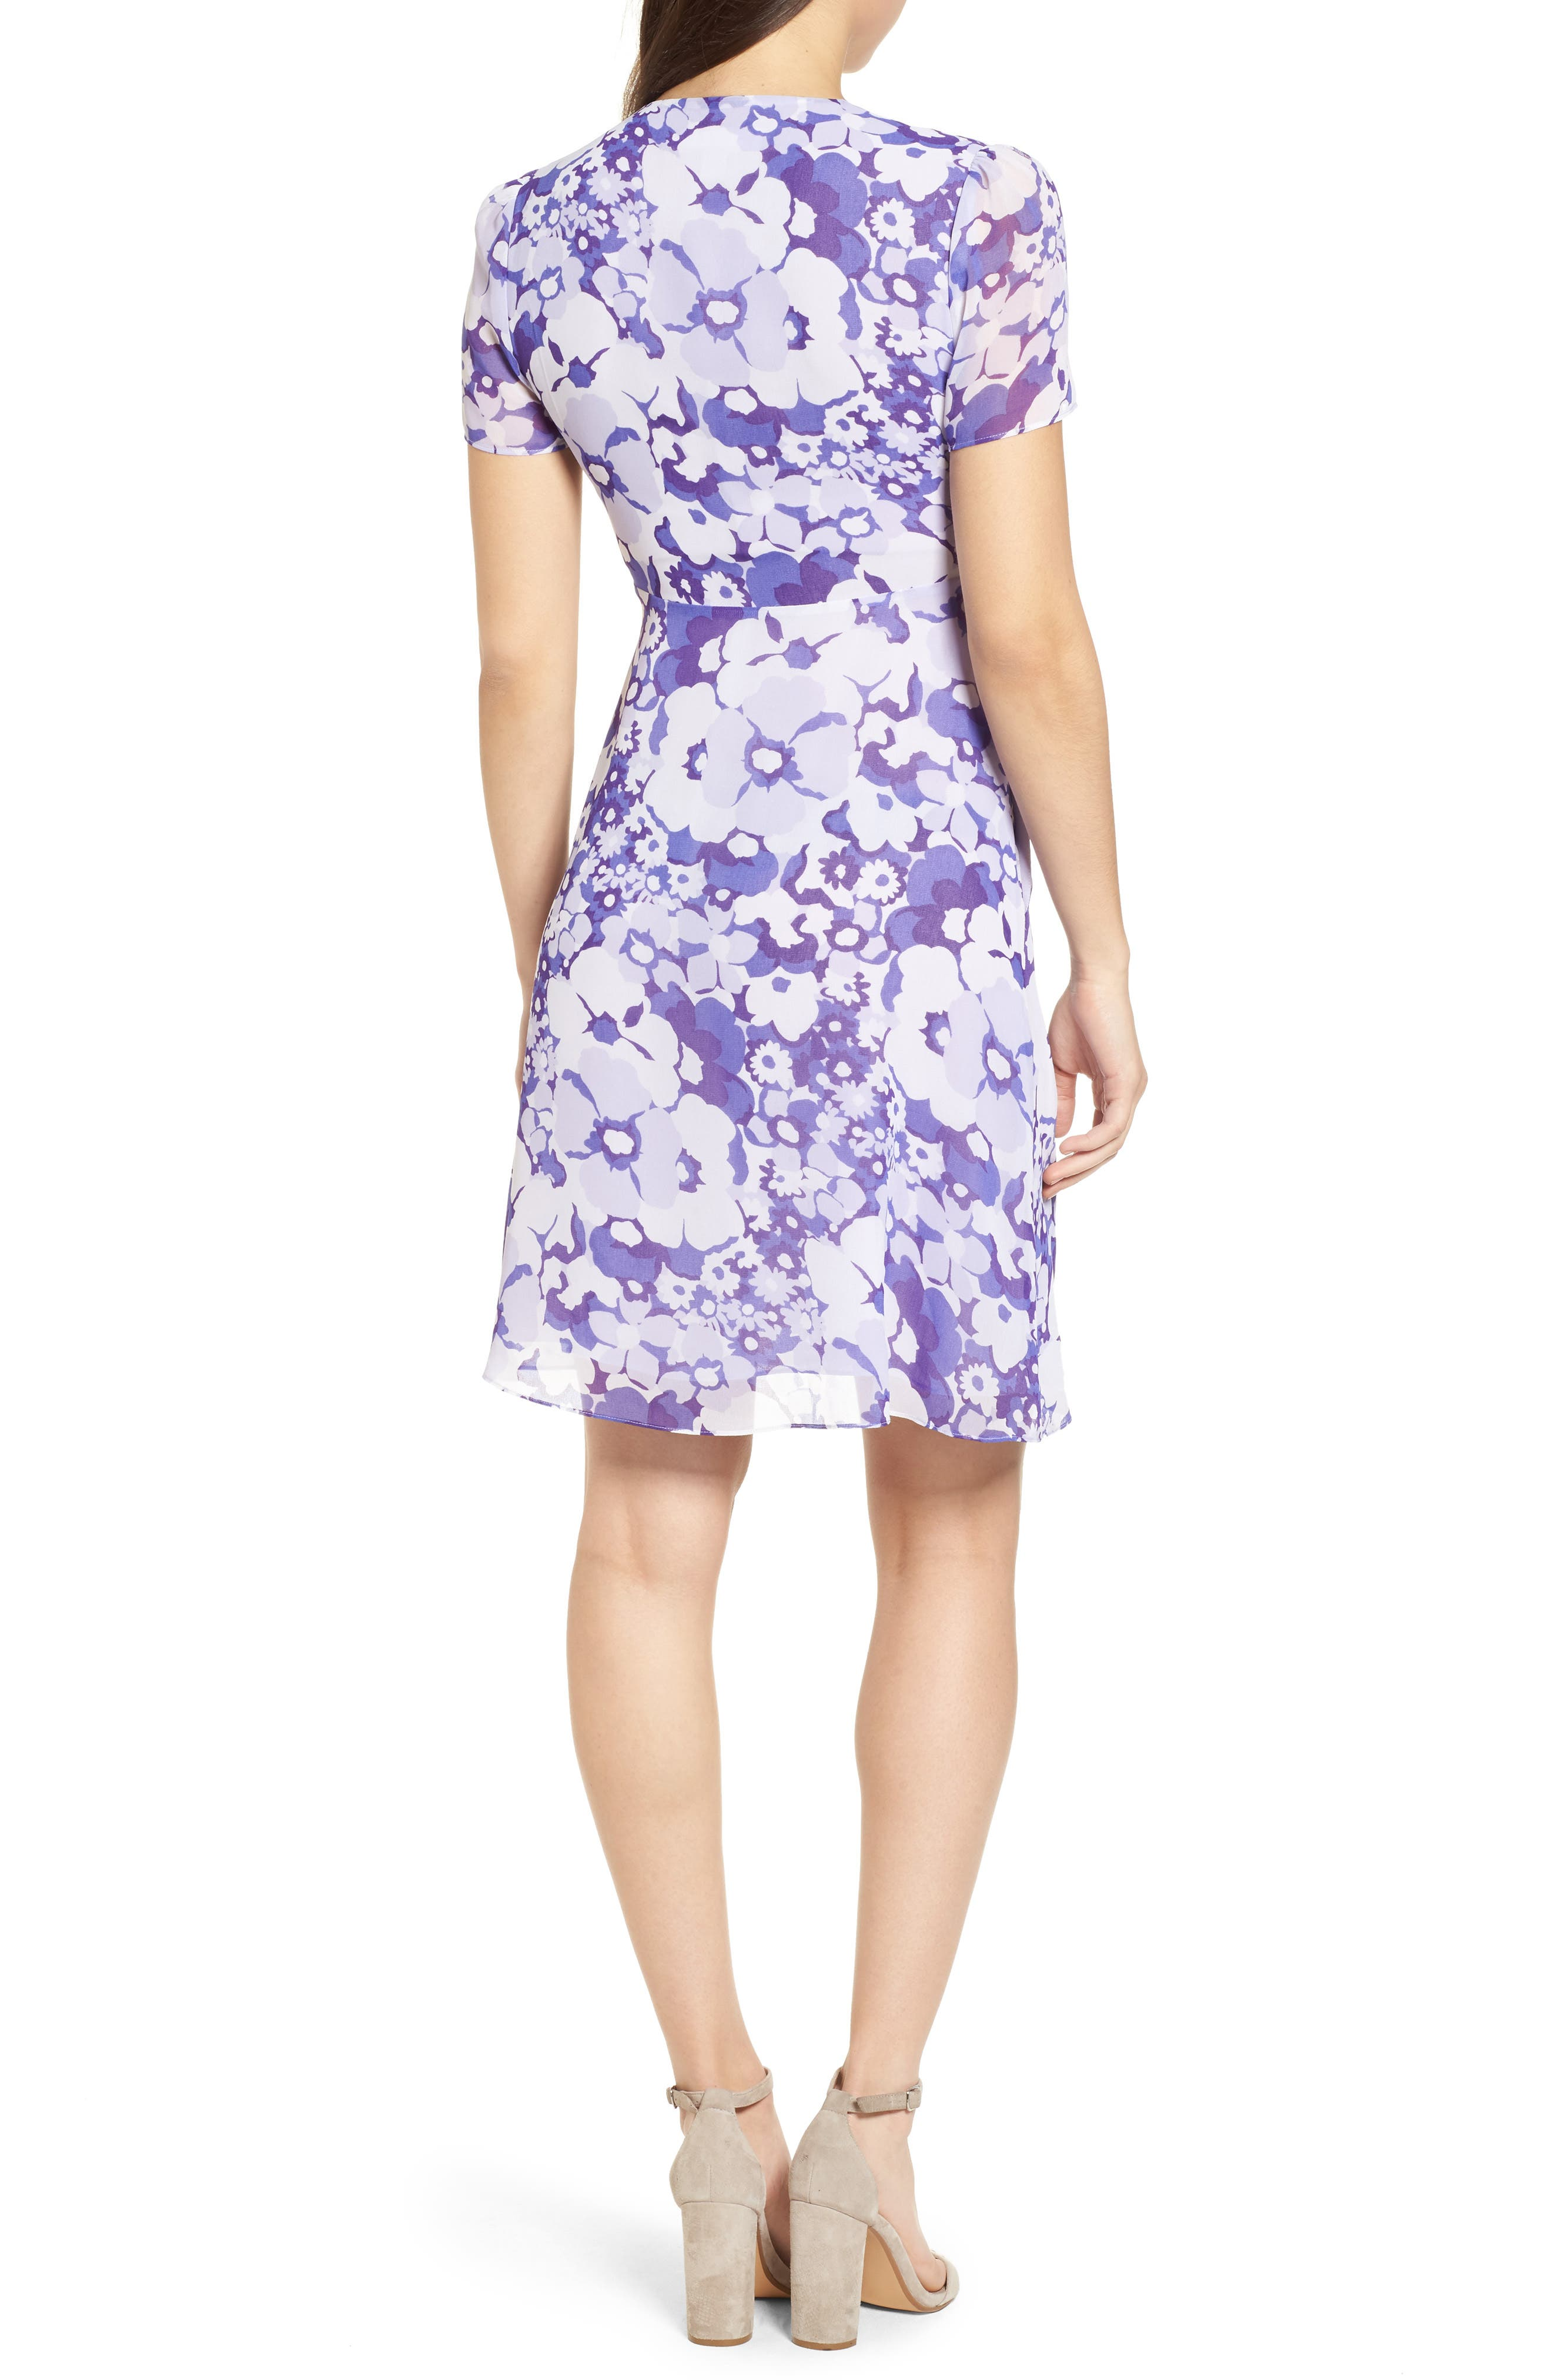 Springtime Floral Dress,                             Alternate thumbnail 2, color,                             Amethyst/ Light Quartz Multi